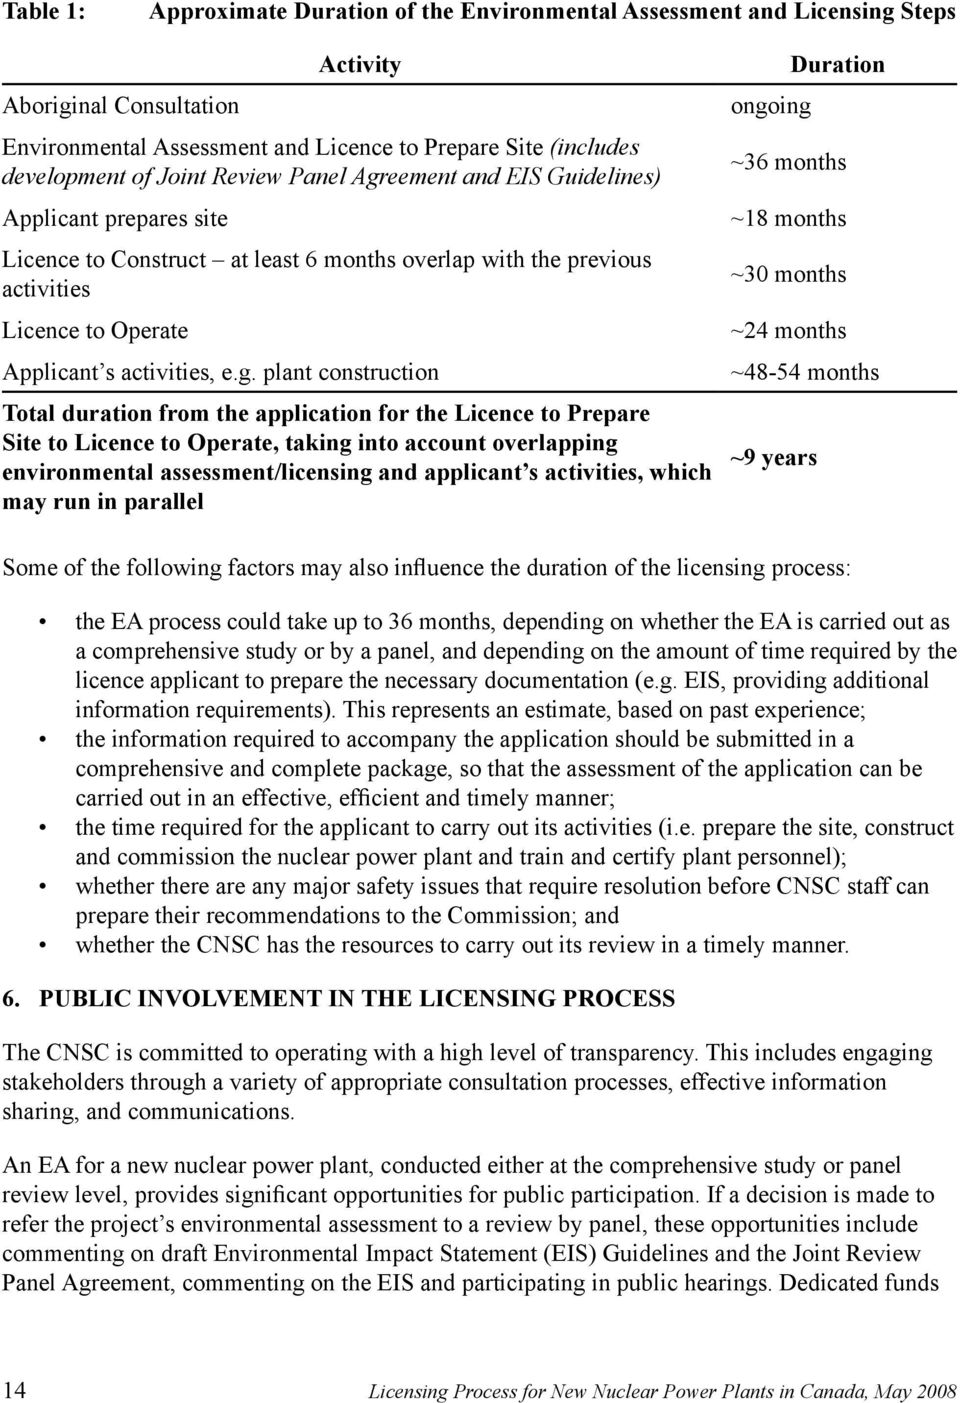 eement and EIS Guidelines) Applicant prepares site Licence to Construct at least 6 months overlap with the previous activities Licence to Operate Applicant s activities, e.g.